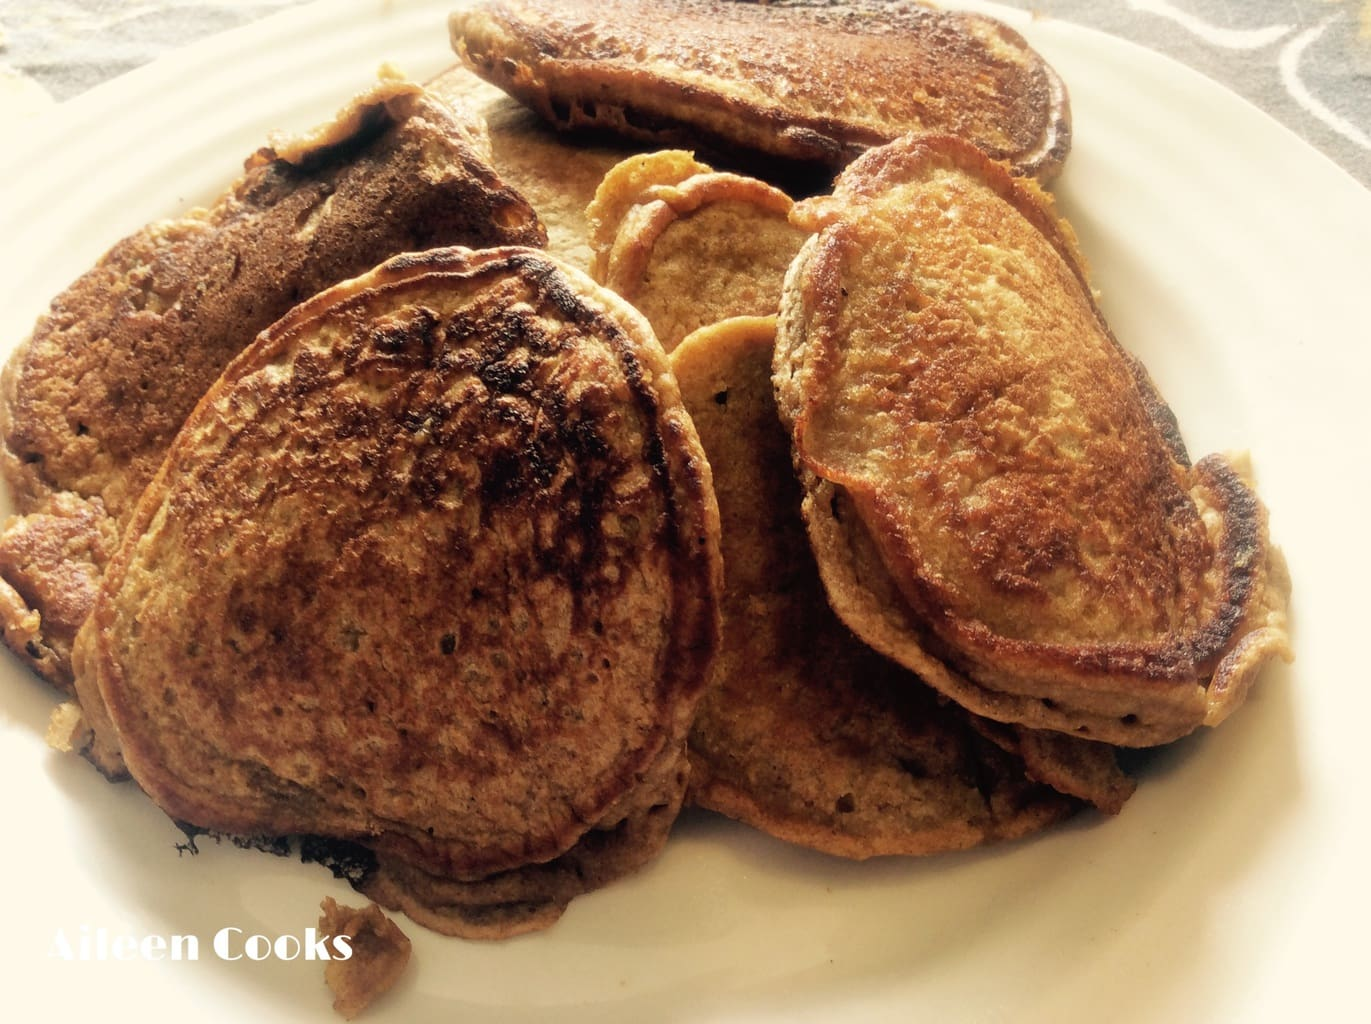 Whole Wheat Pumpkin Pancakes | Aileen Cooks